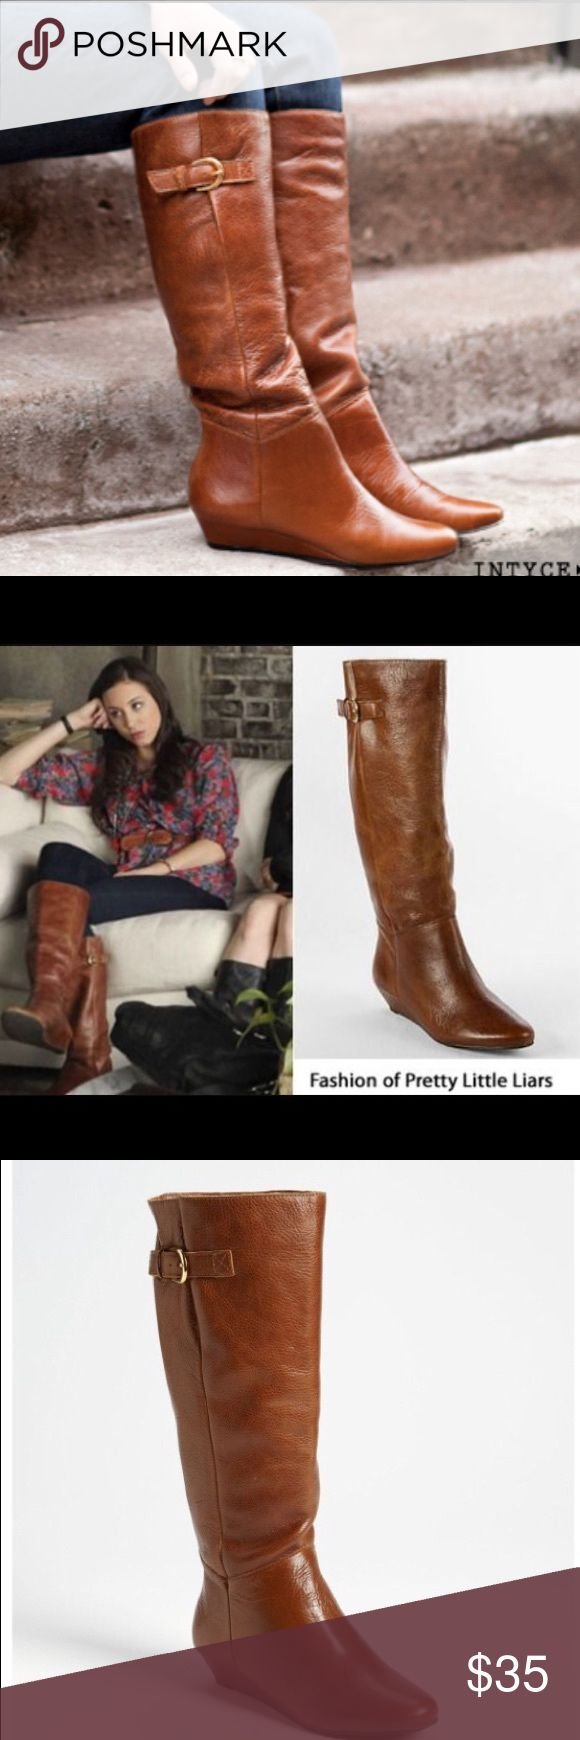 EUC! Steve Madden Intyce Boots Amazing leather quality and color. Some wear but nothing a little polish can't fix. Perfect for the winter season. Born to be worn with skinnies. True size 8. Steve Madden Shoes Ankle Boots & Booties